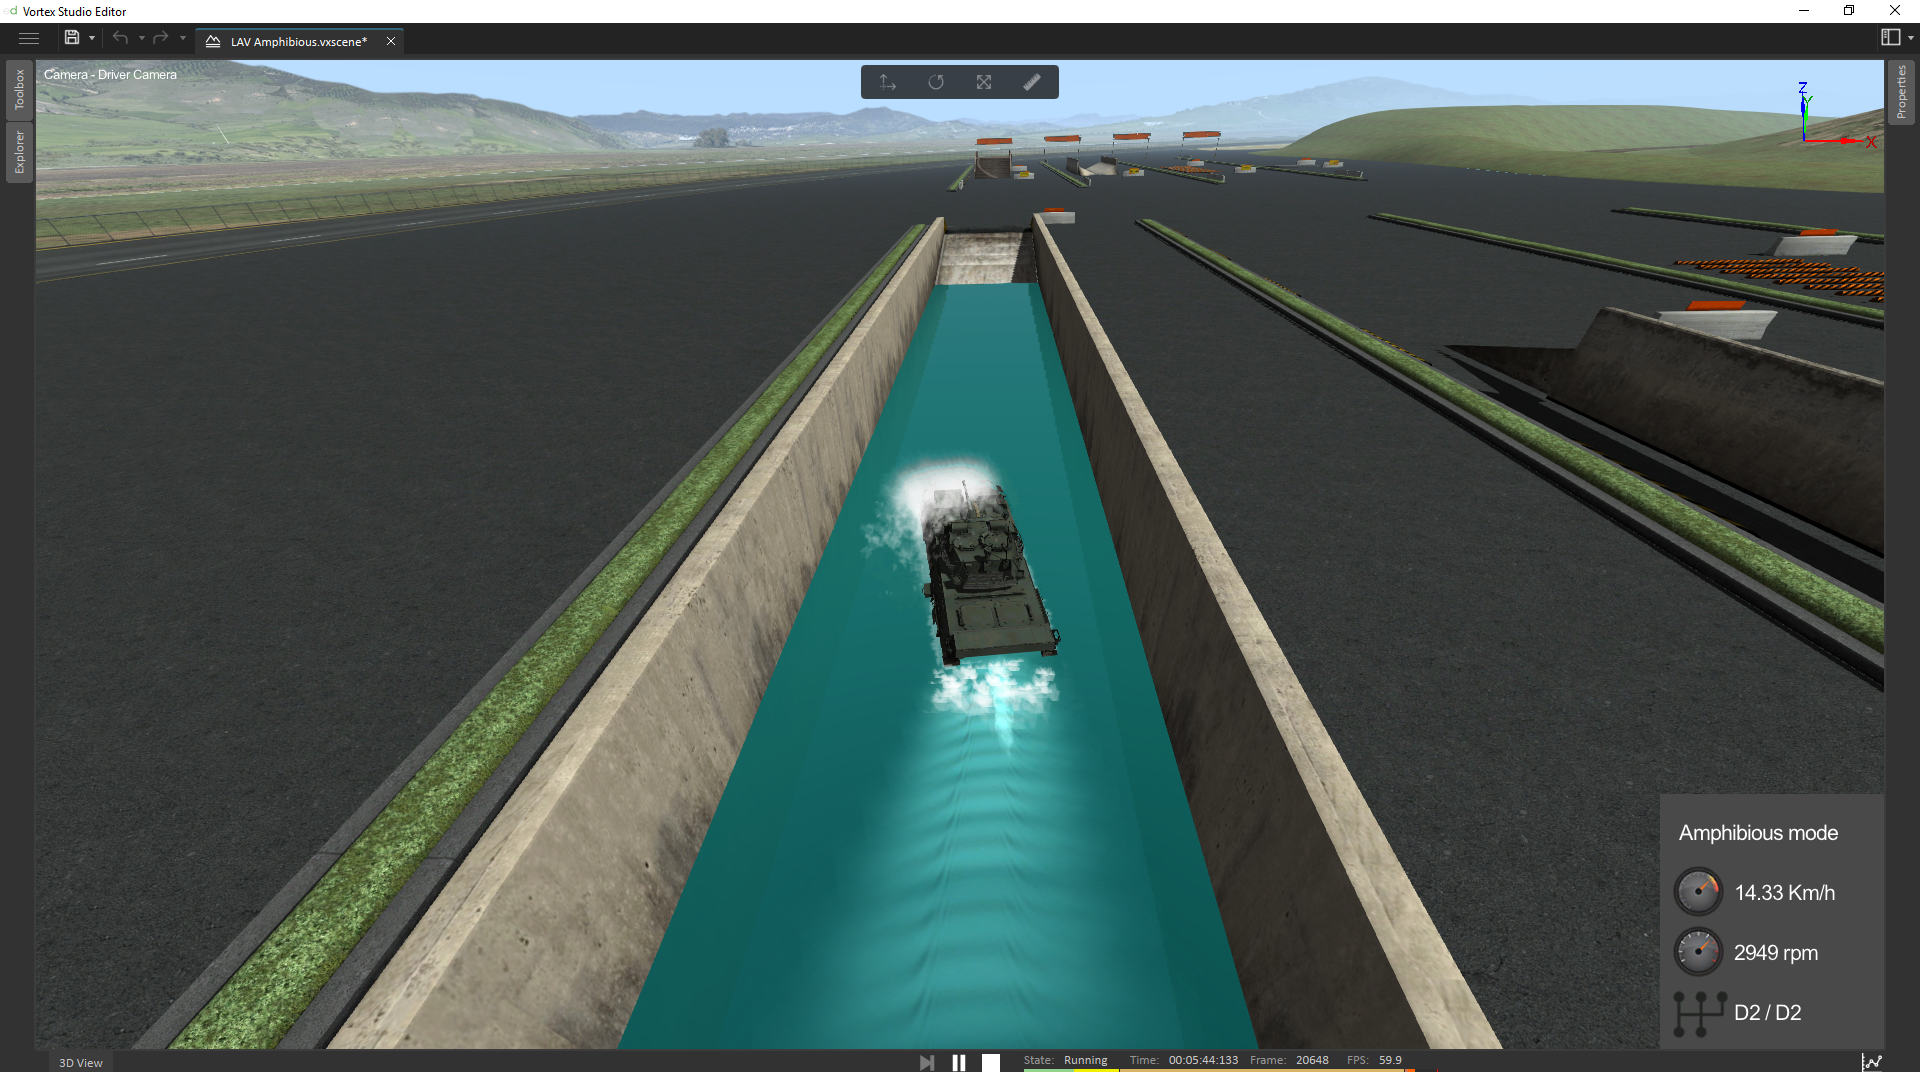 Amphibious vehicle simulation with Vortex Studio